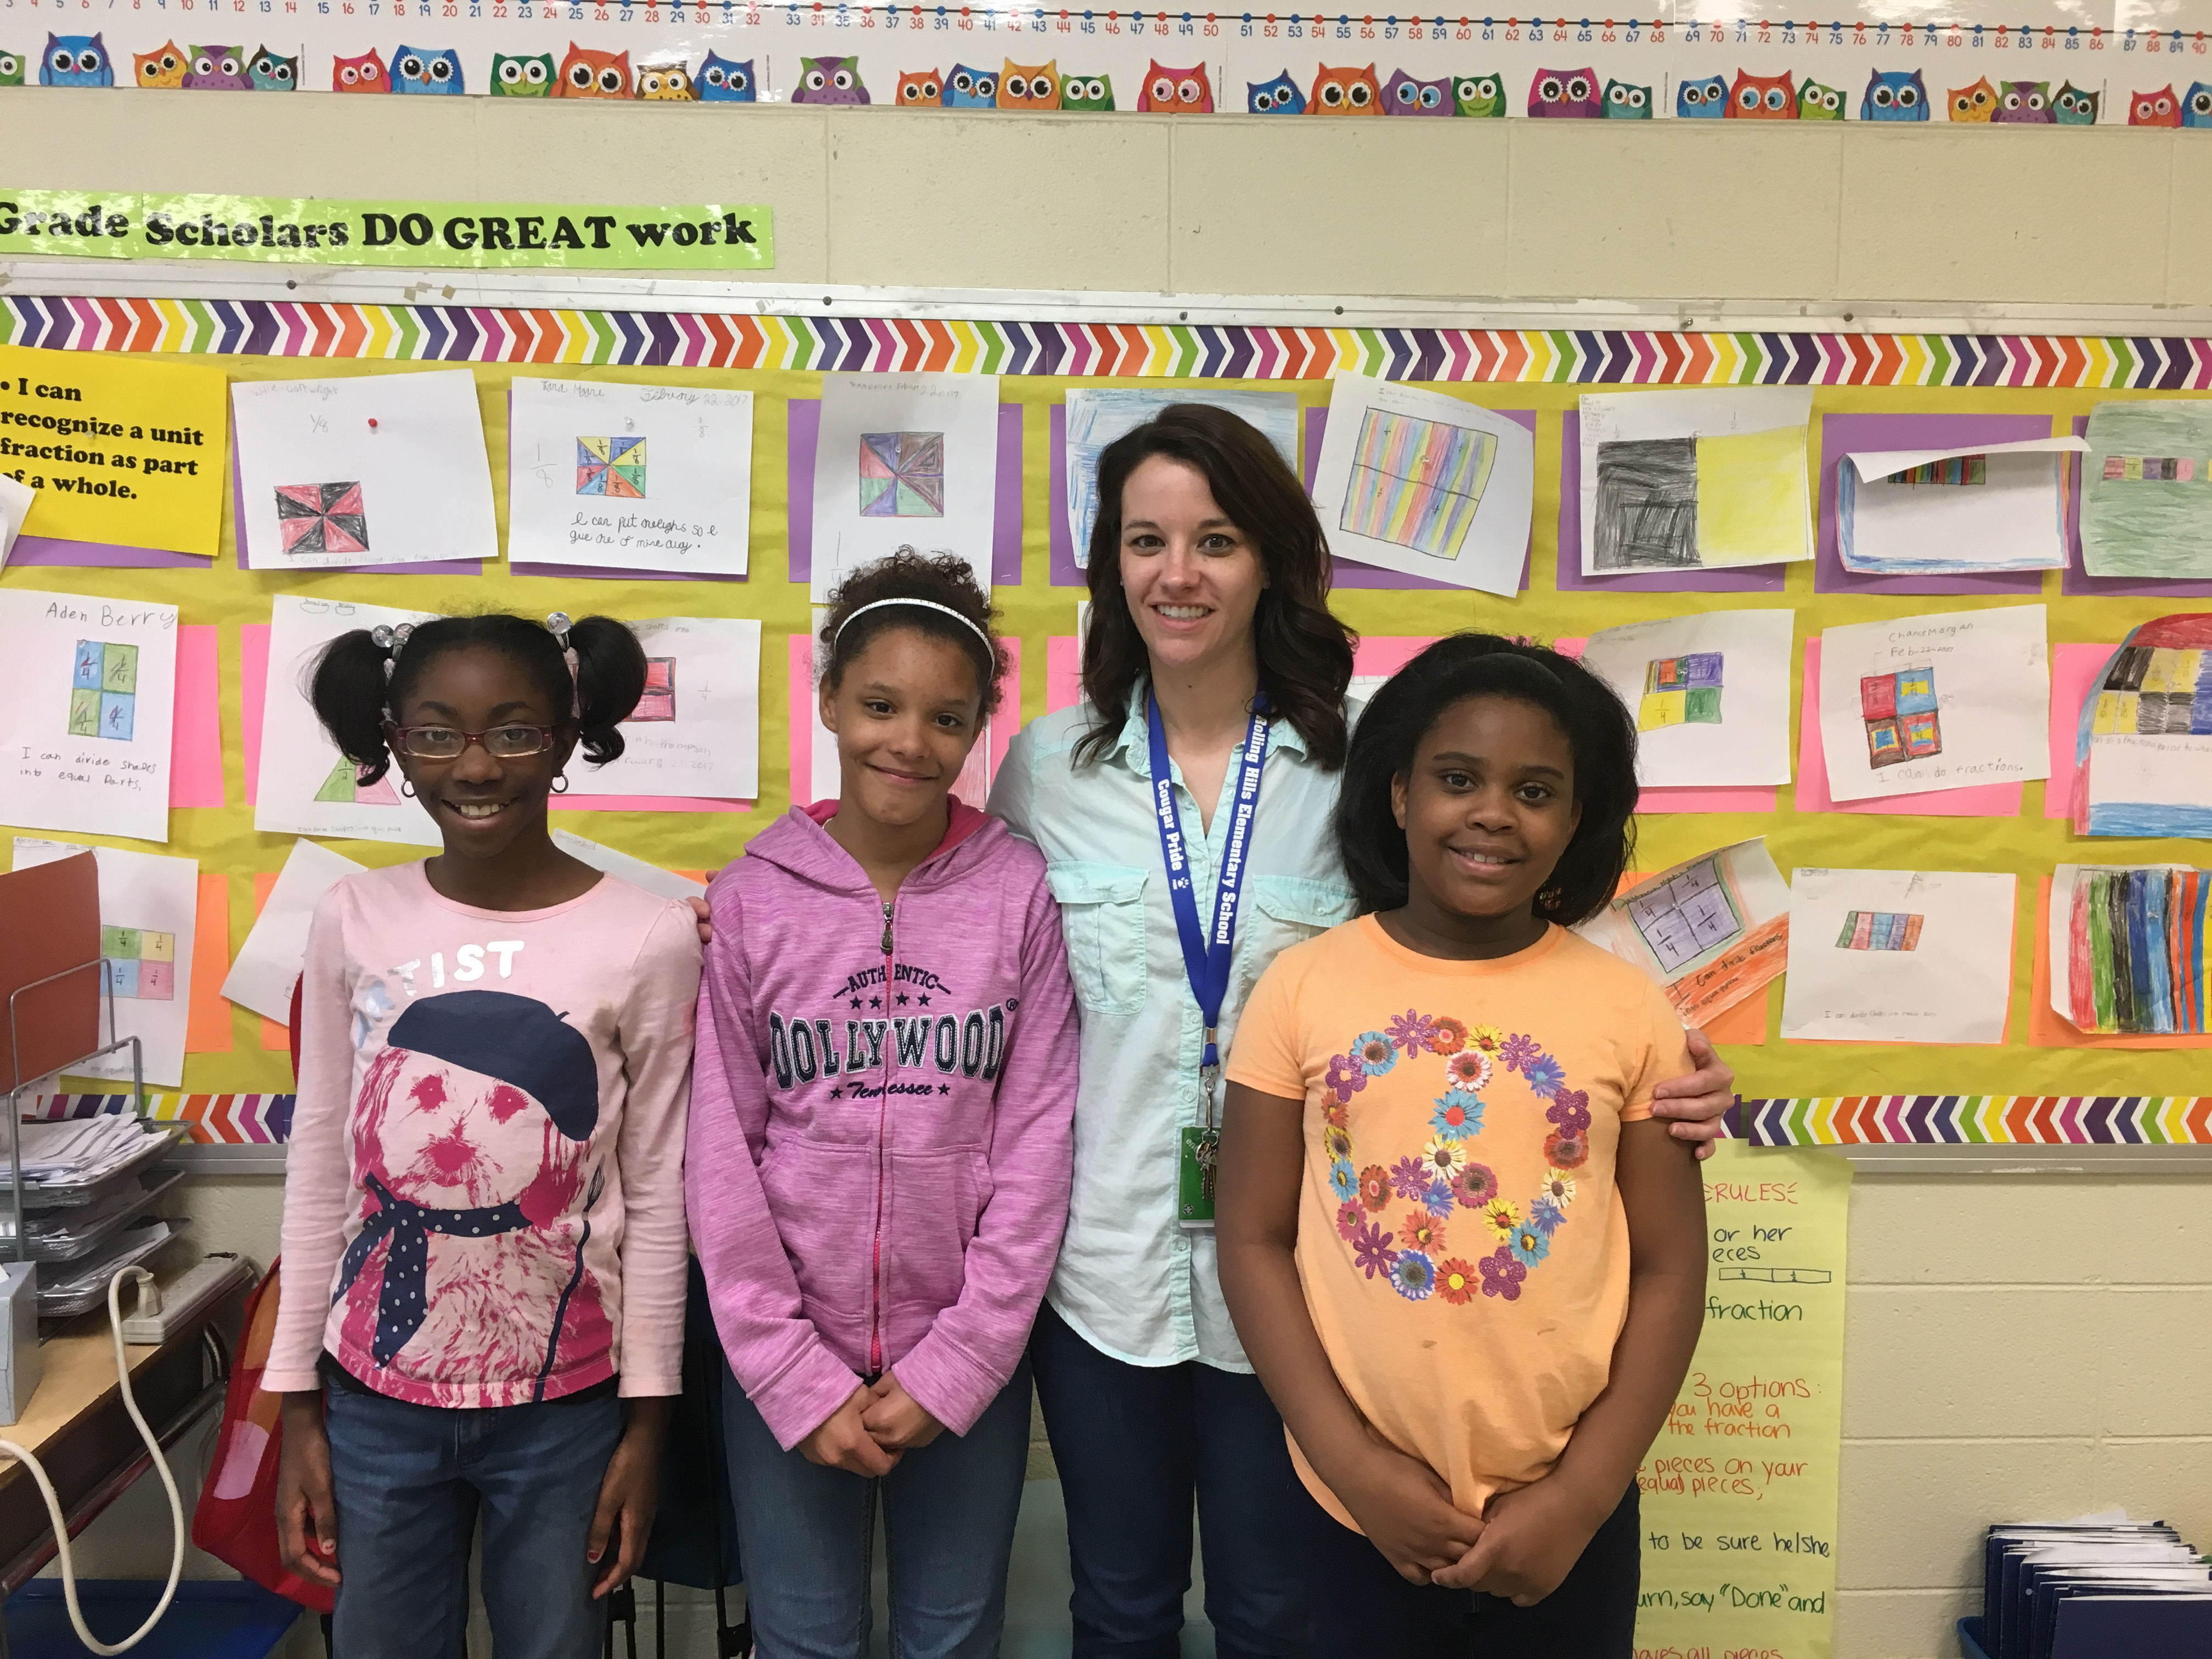 RHES Math Team Winners - 3rd grade - Kamaya Beasley 2nd place, Alexia Love 1st place, Ms Christopher, and Niyah Moore 3rd place - 2017